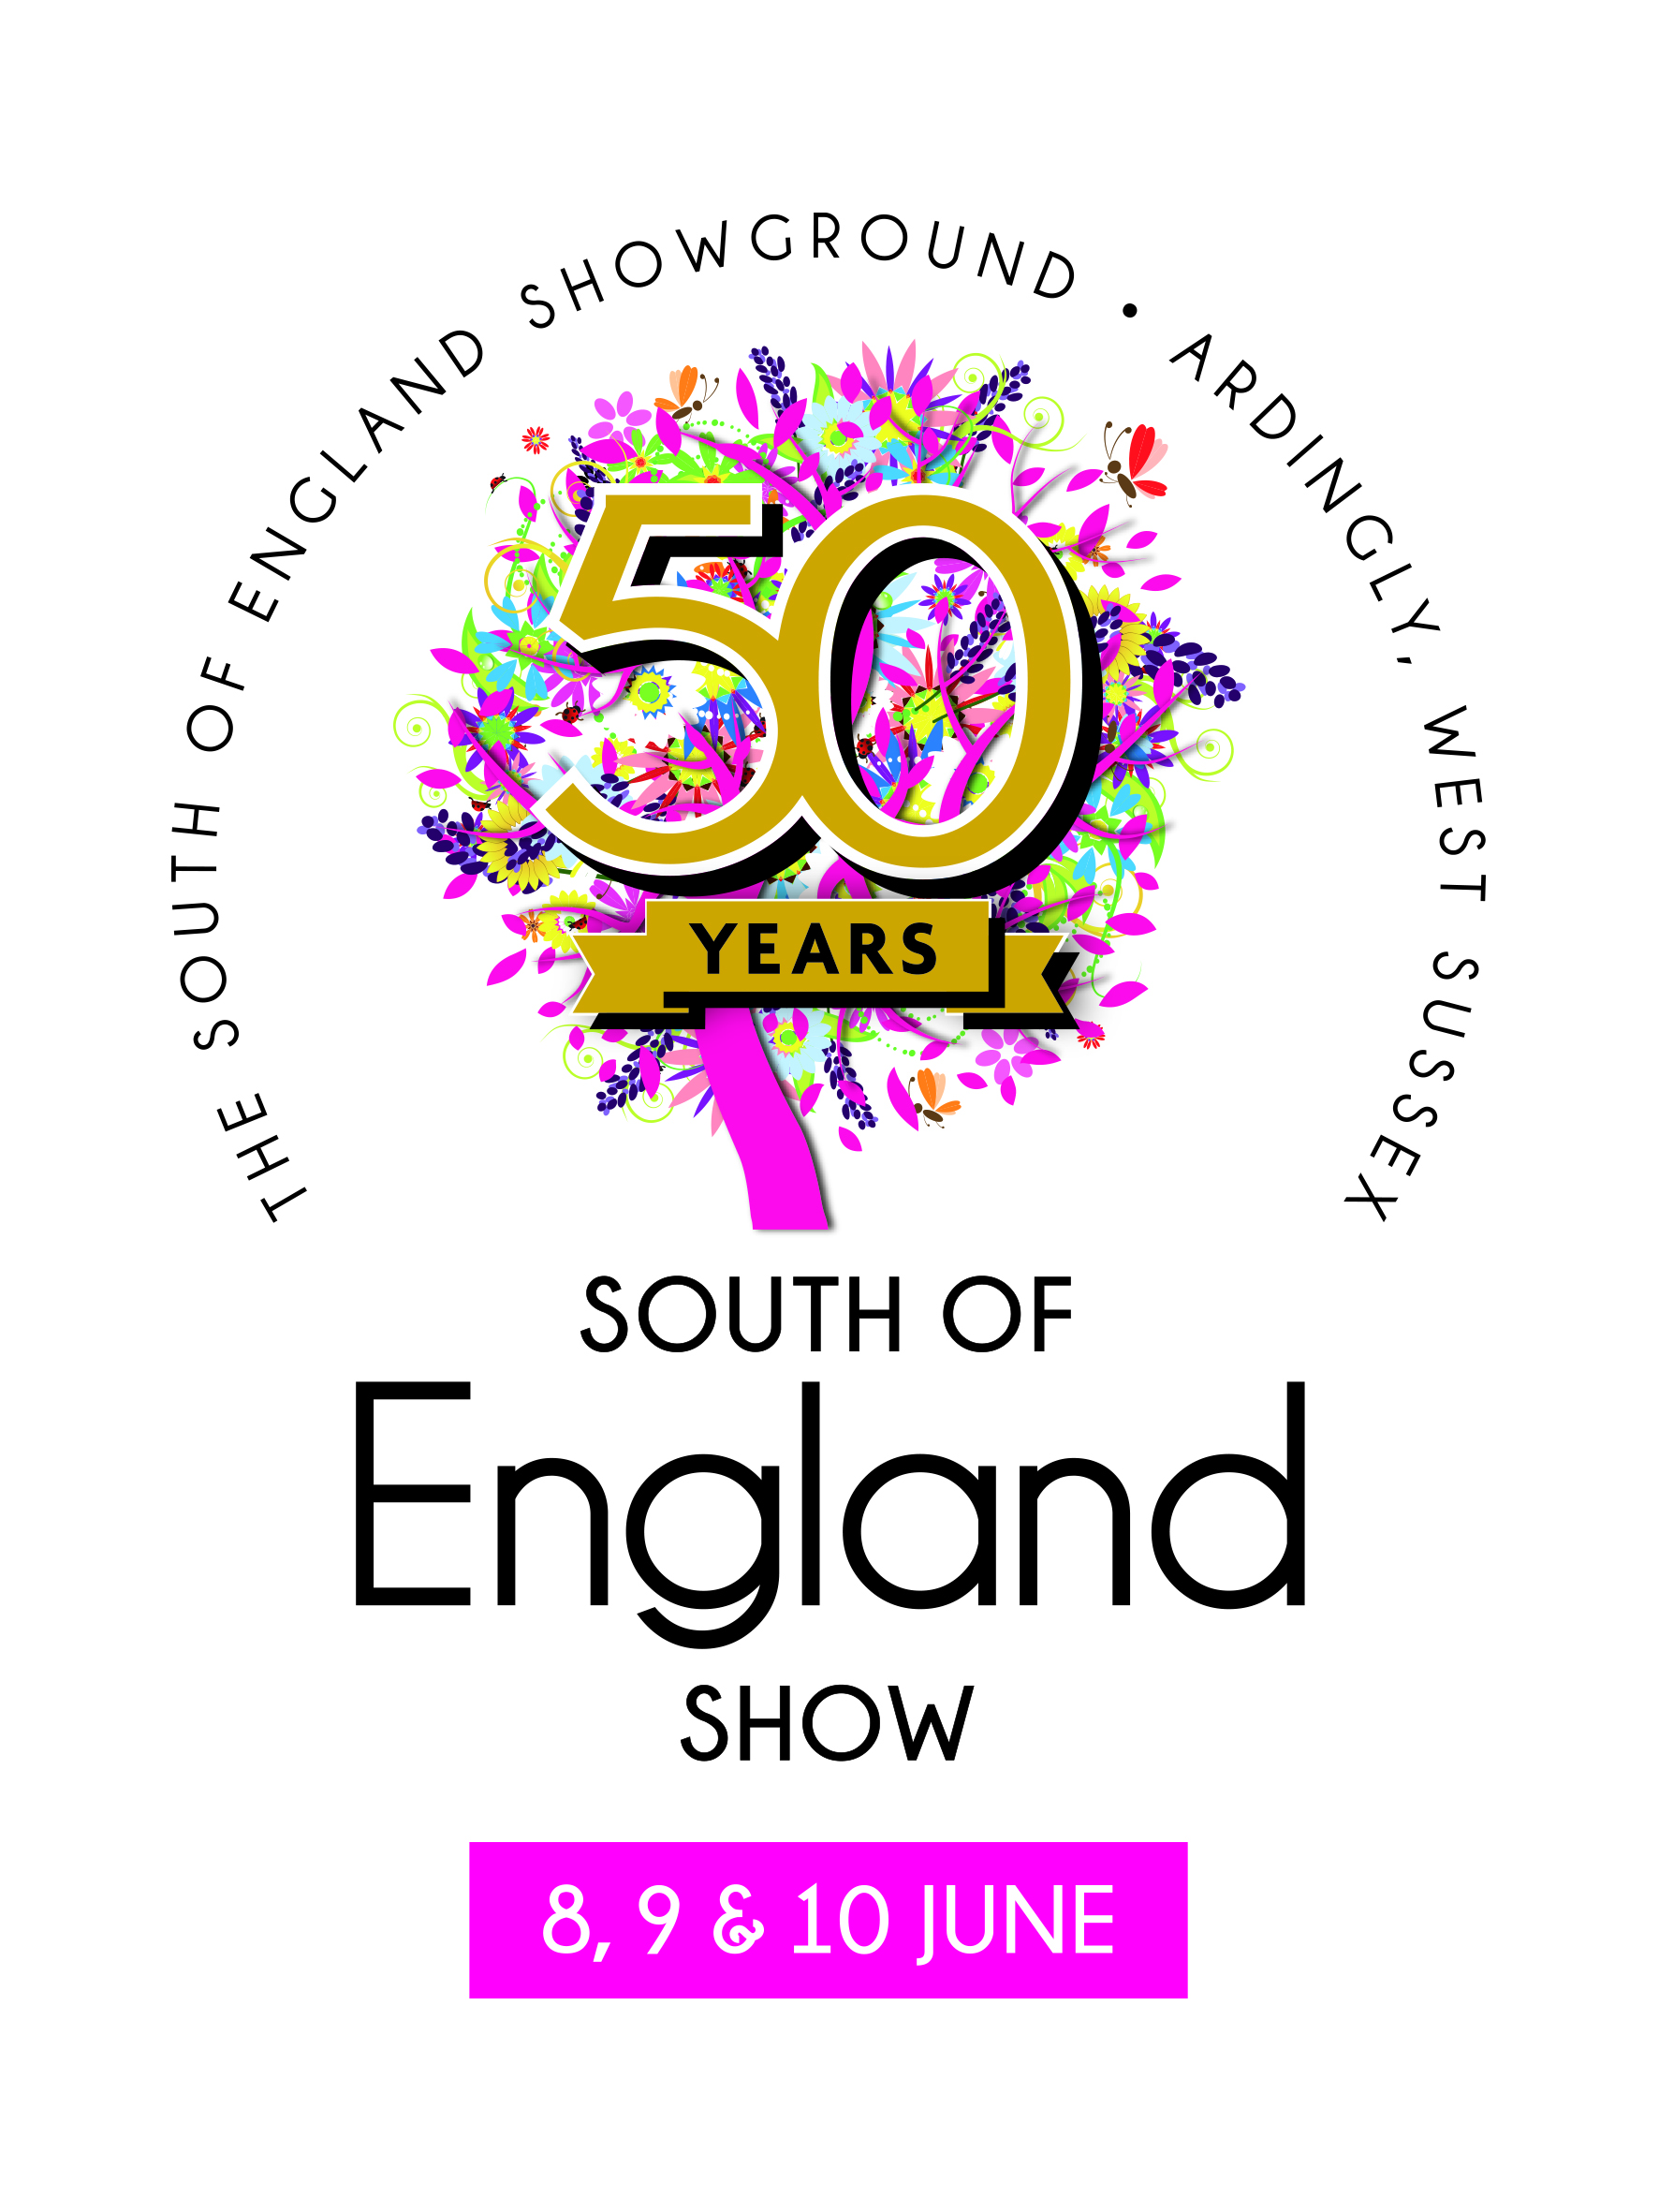 South of England Show 2017